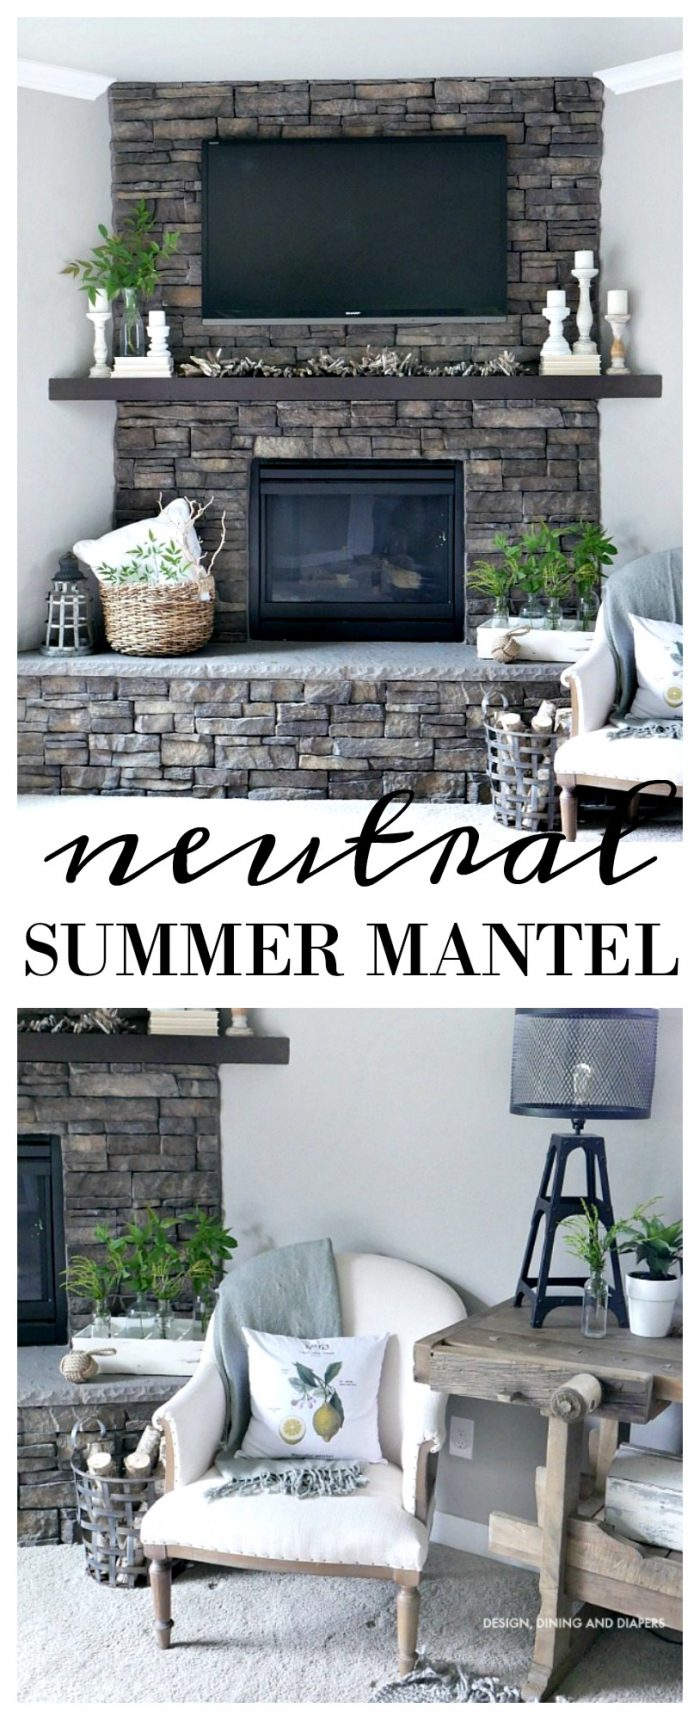 A simple neutral summer mantel. Just a few touches of summer greens and wicker to add a little summer decor to your fireplace.